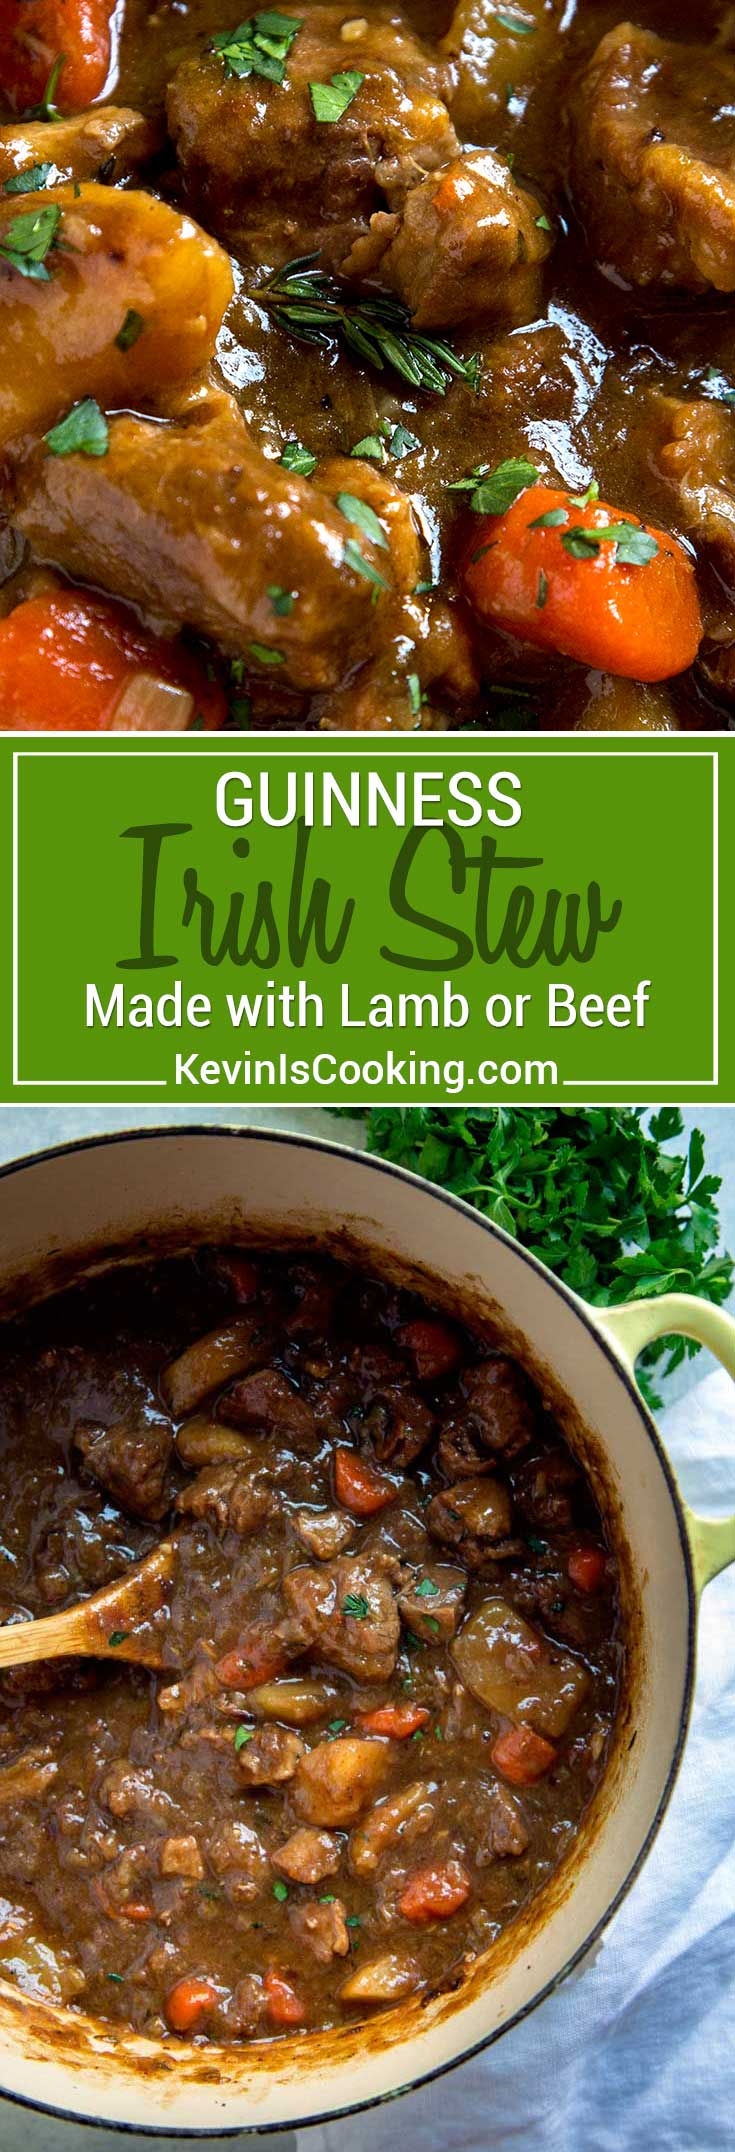 St. Patrick's Day doesn't mean just serving up corned beef. This Guinness Irish Stew is a great alternative with an incredibly rich, thick broth. Lamb or beef get layered with flavors due to a slow braise in Guinness beer, vegetables and herbs. Plus it's made all in one pan! #stew #Irish #Guinness